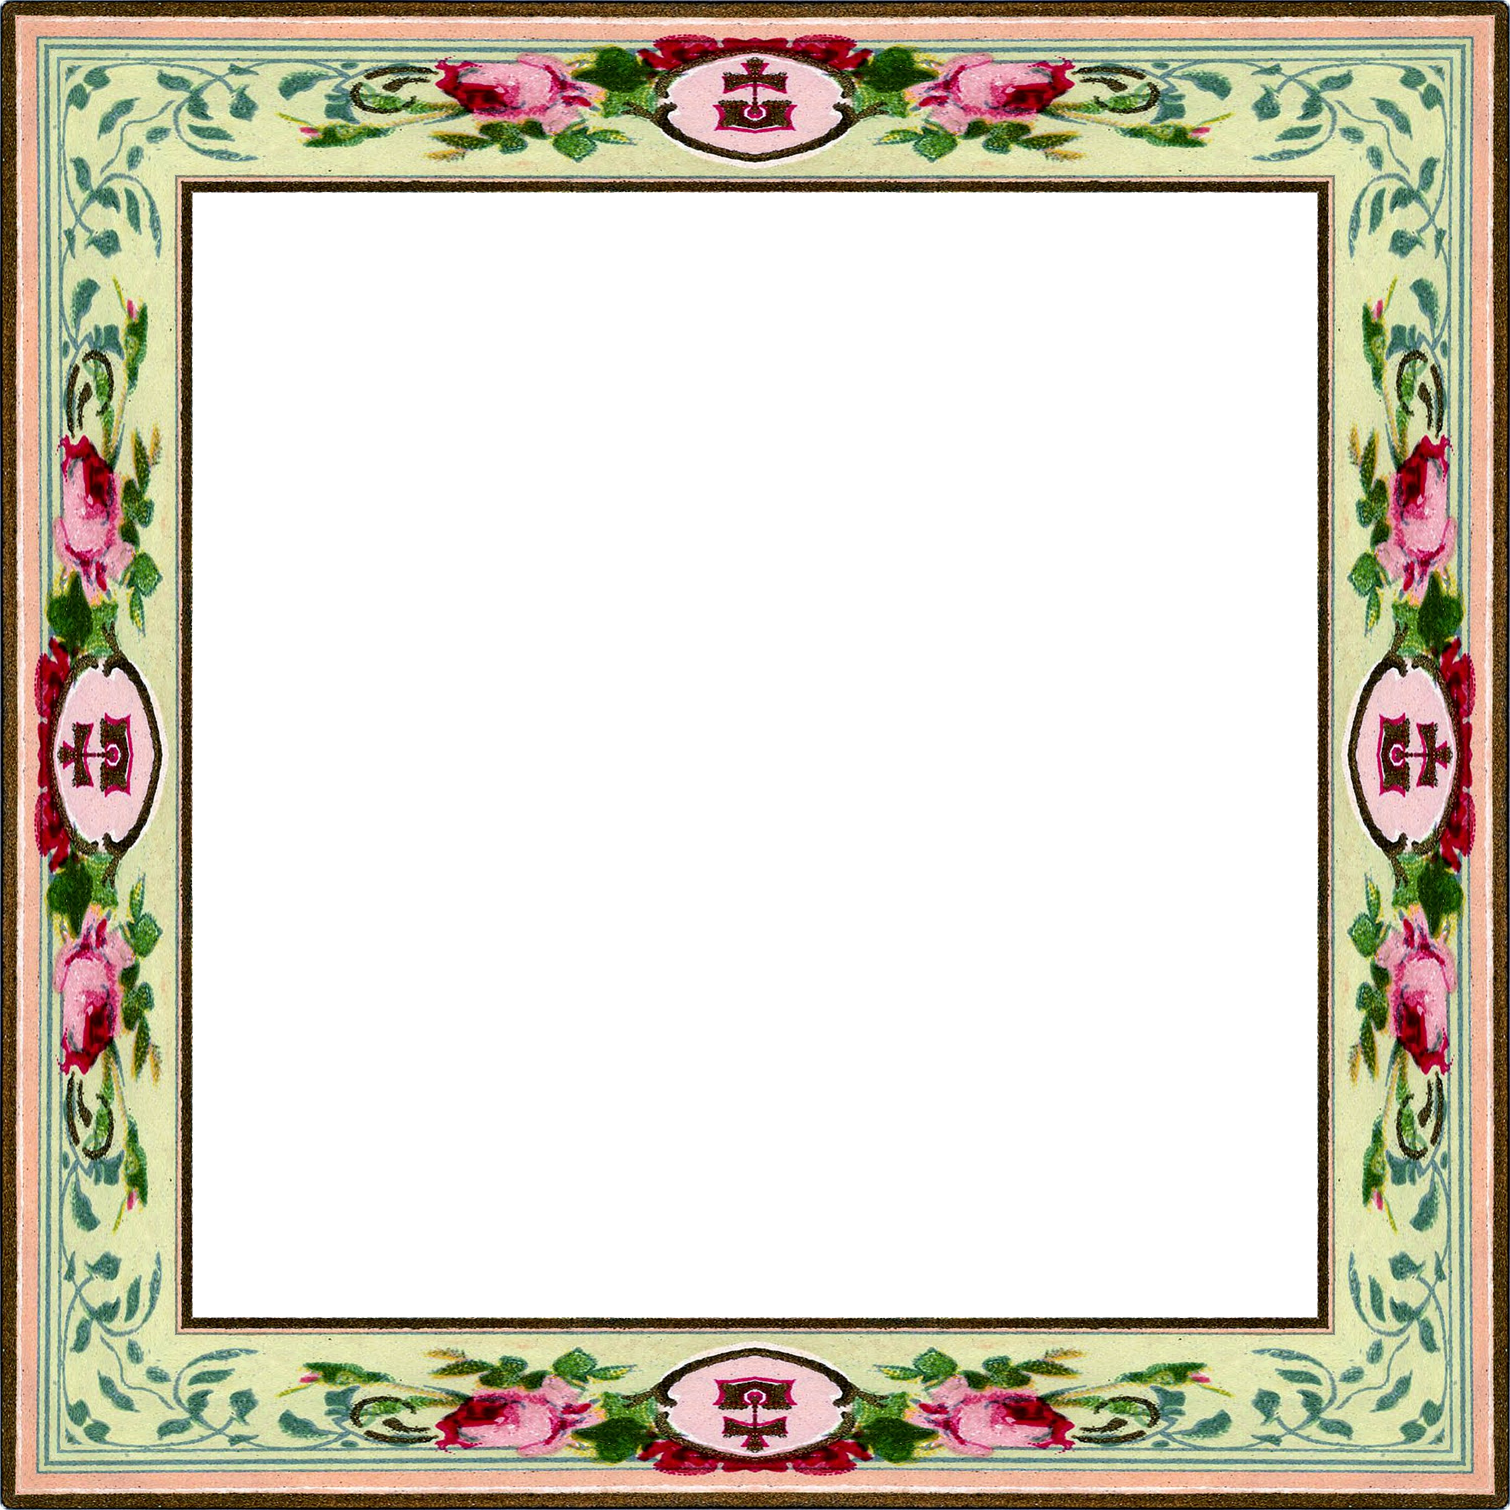 ... Frames sets for $1.00 at my stores and a beautiful CU Vintage Frame